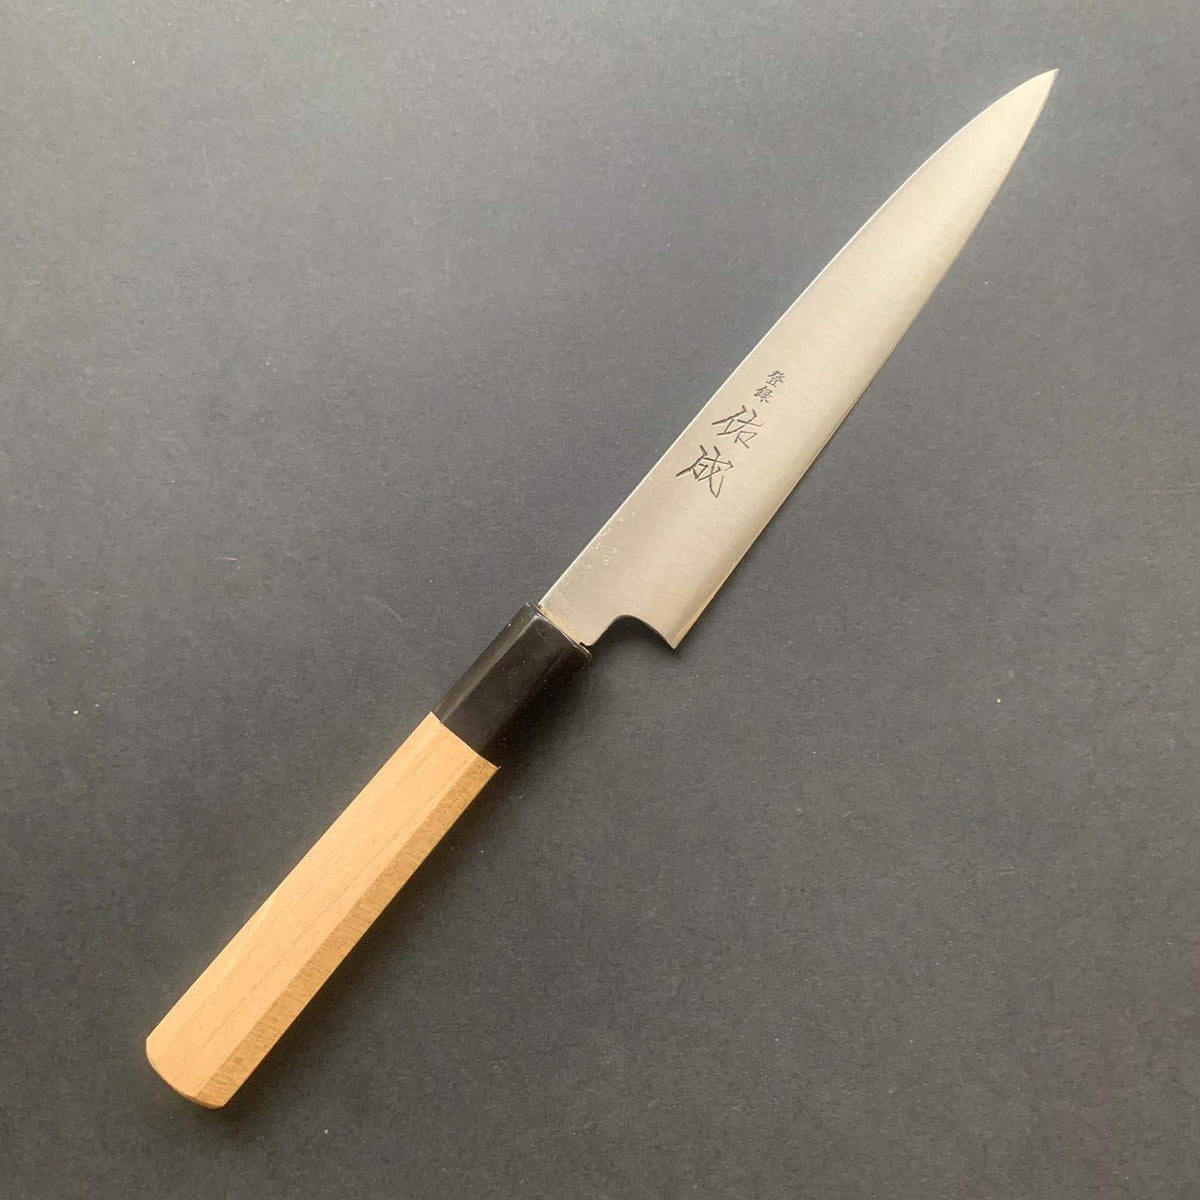 Petty knife, Aogami super with stainless cladding, migaki finish - Sukenari